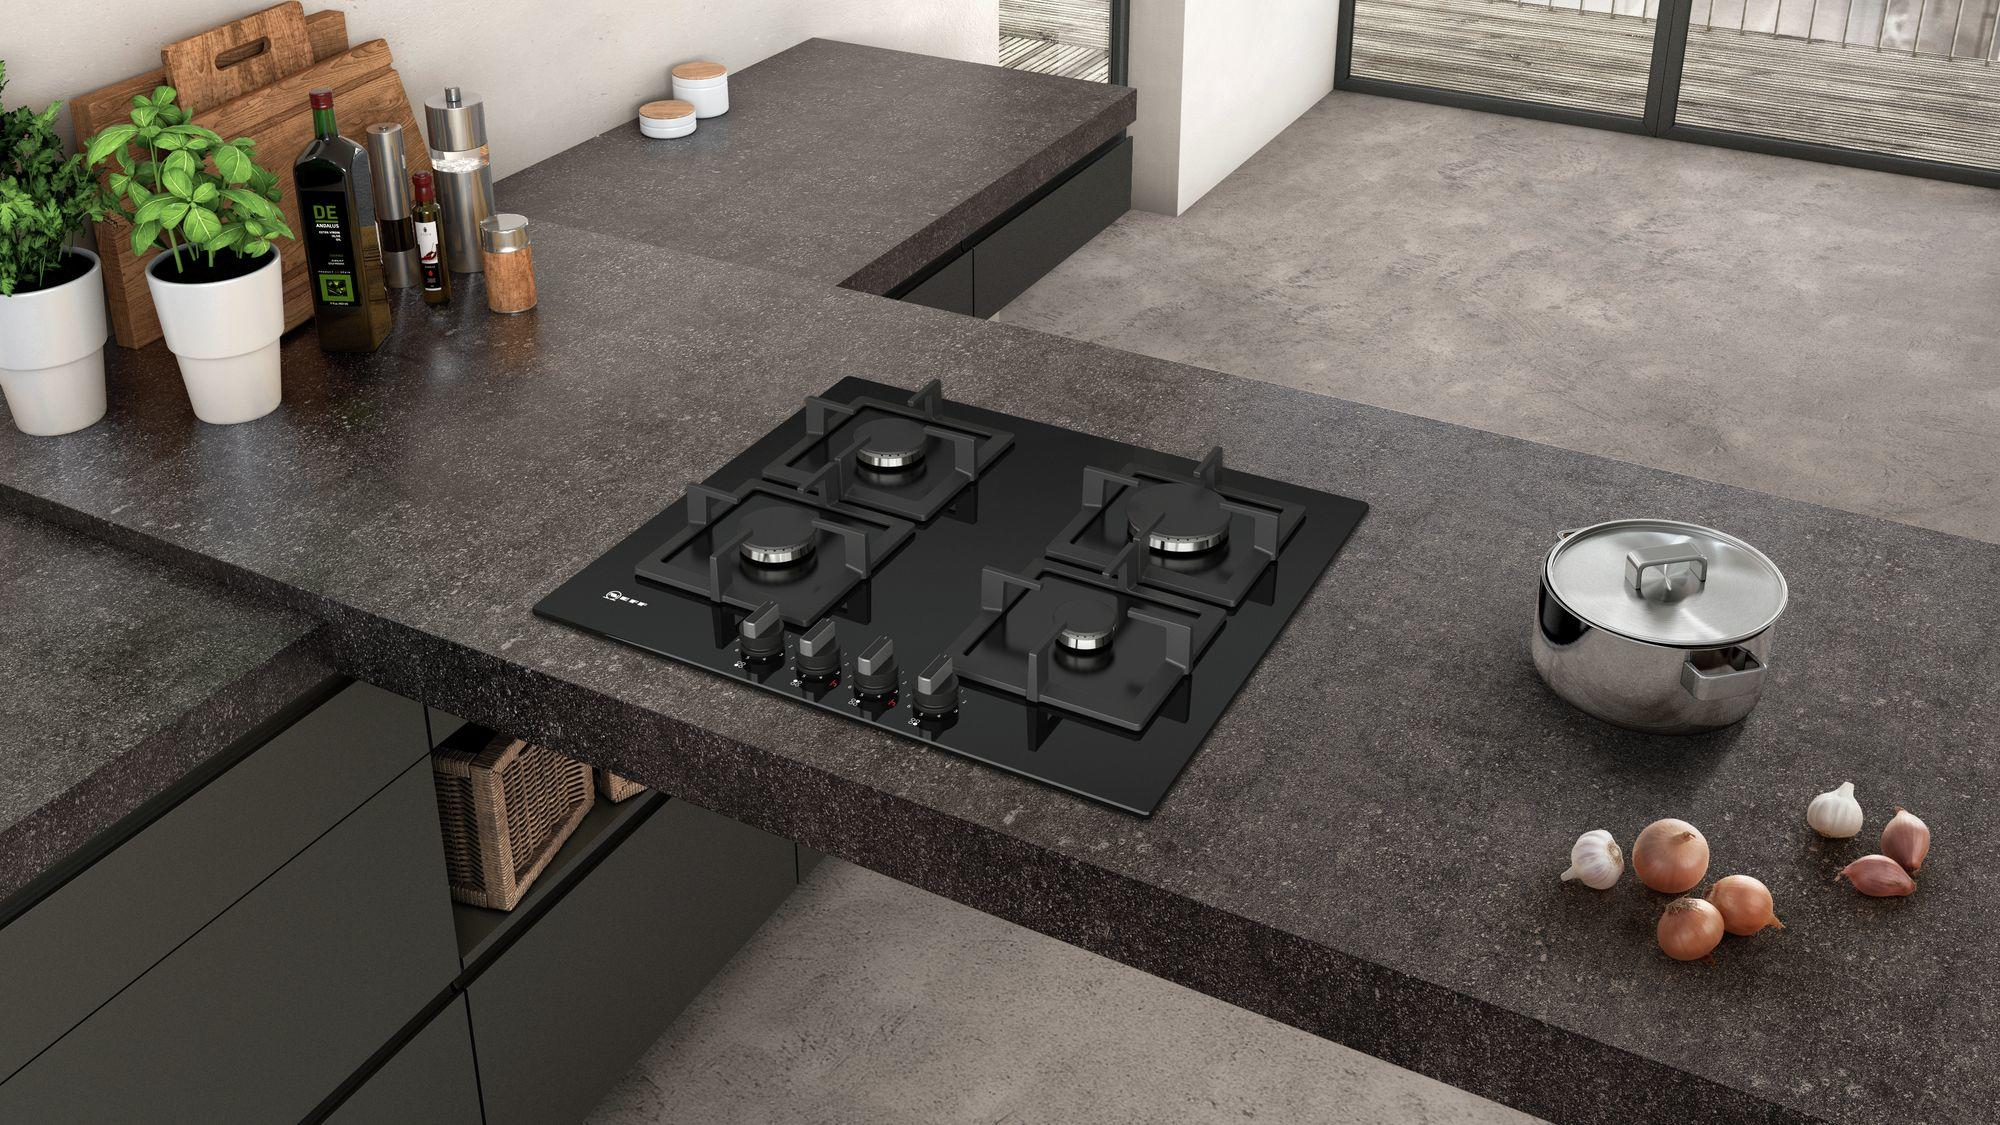 neff t26ca42s0 black 60cm 4 burner gas hob neff249. Black Bedroom Furniture Sets. Home Design Ideas